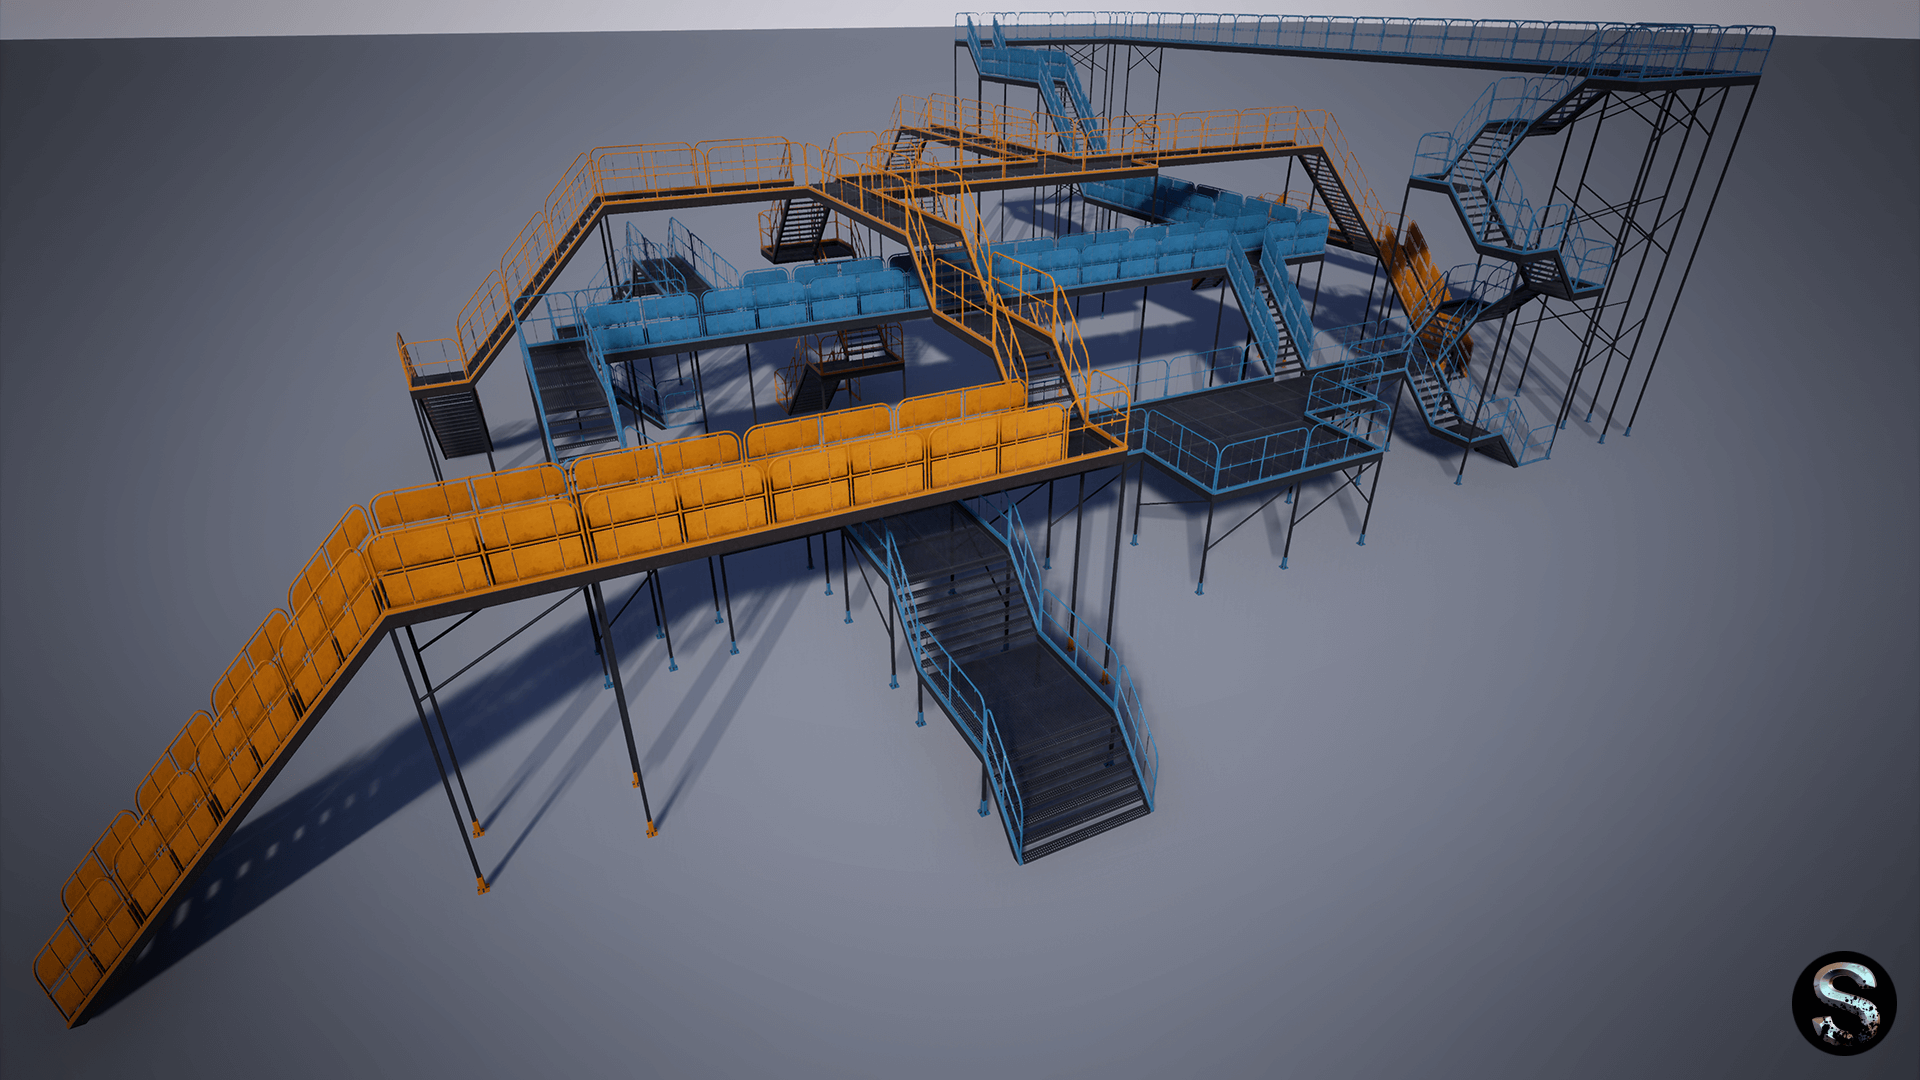 Modular Platform by SilverTm in Props - UE4 Marketplace